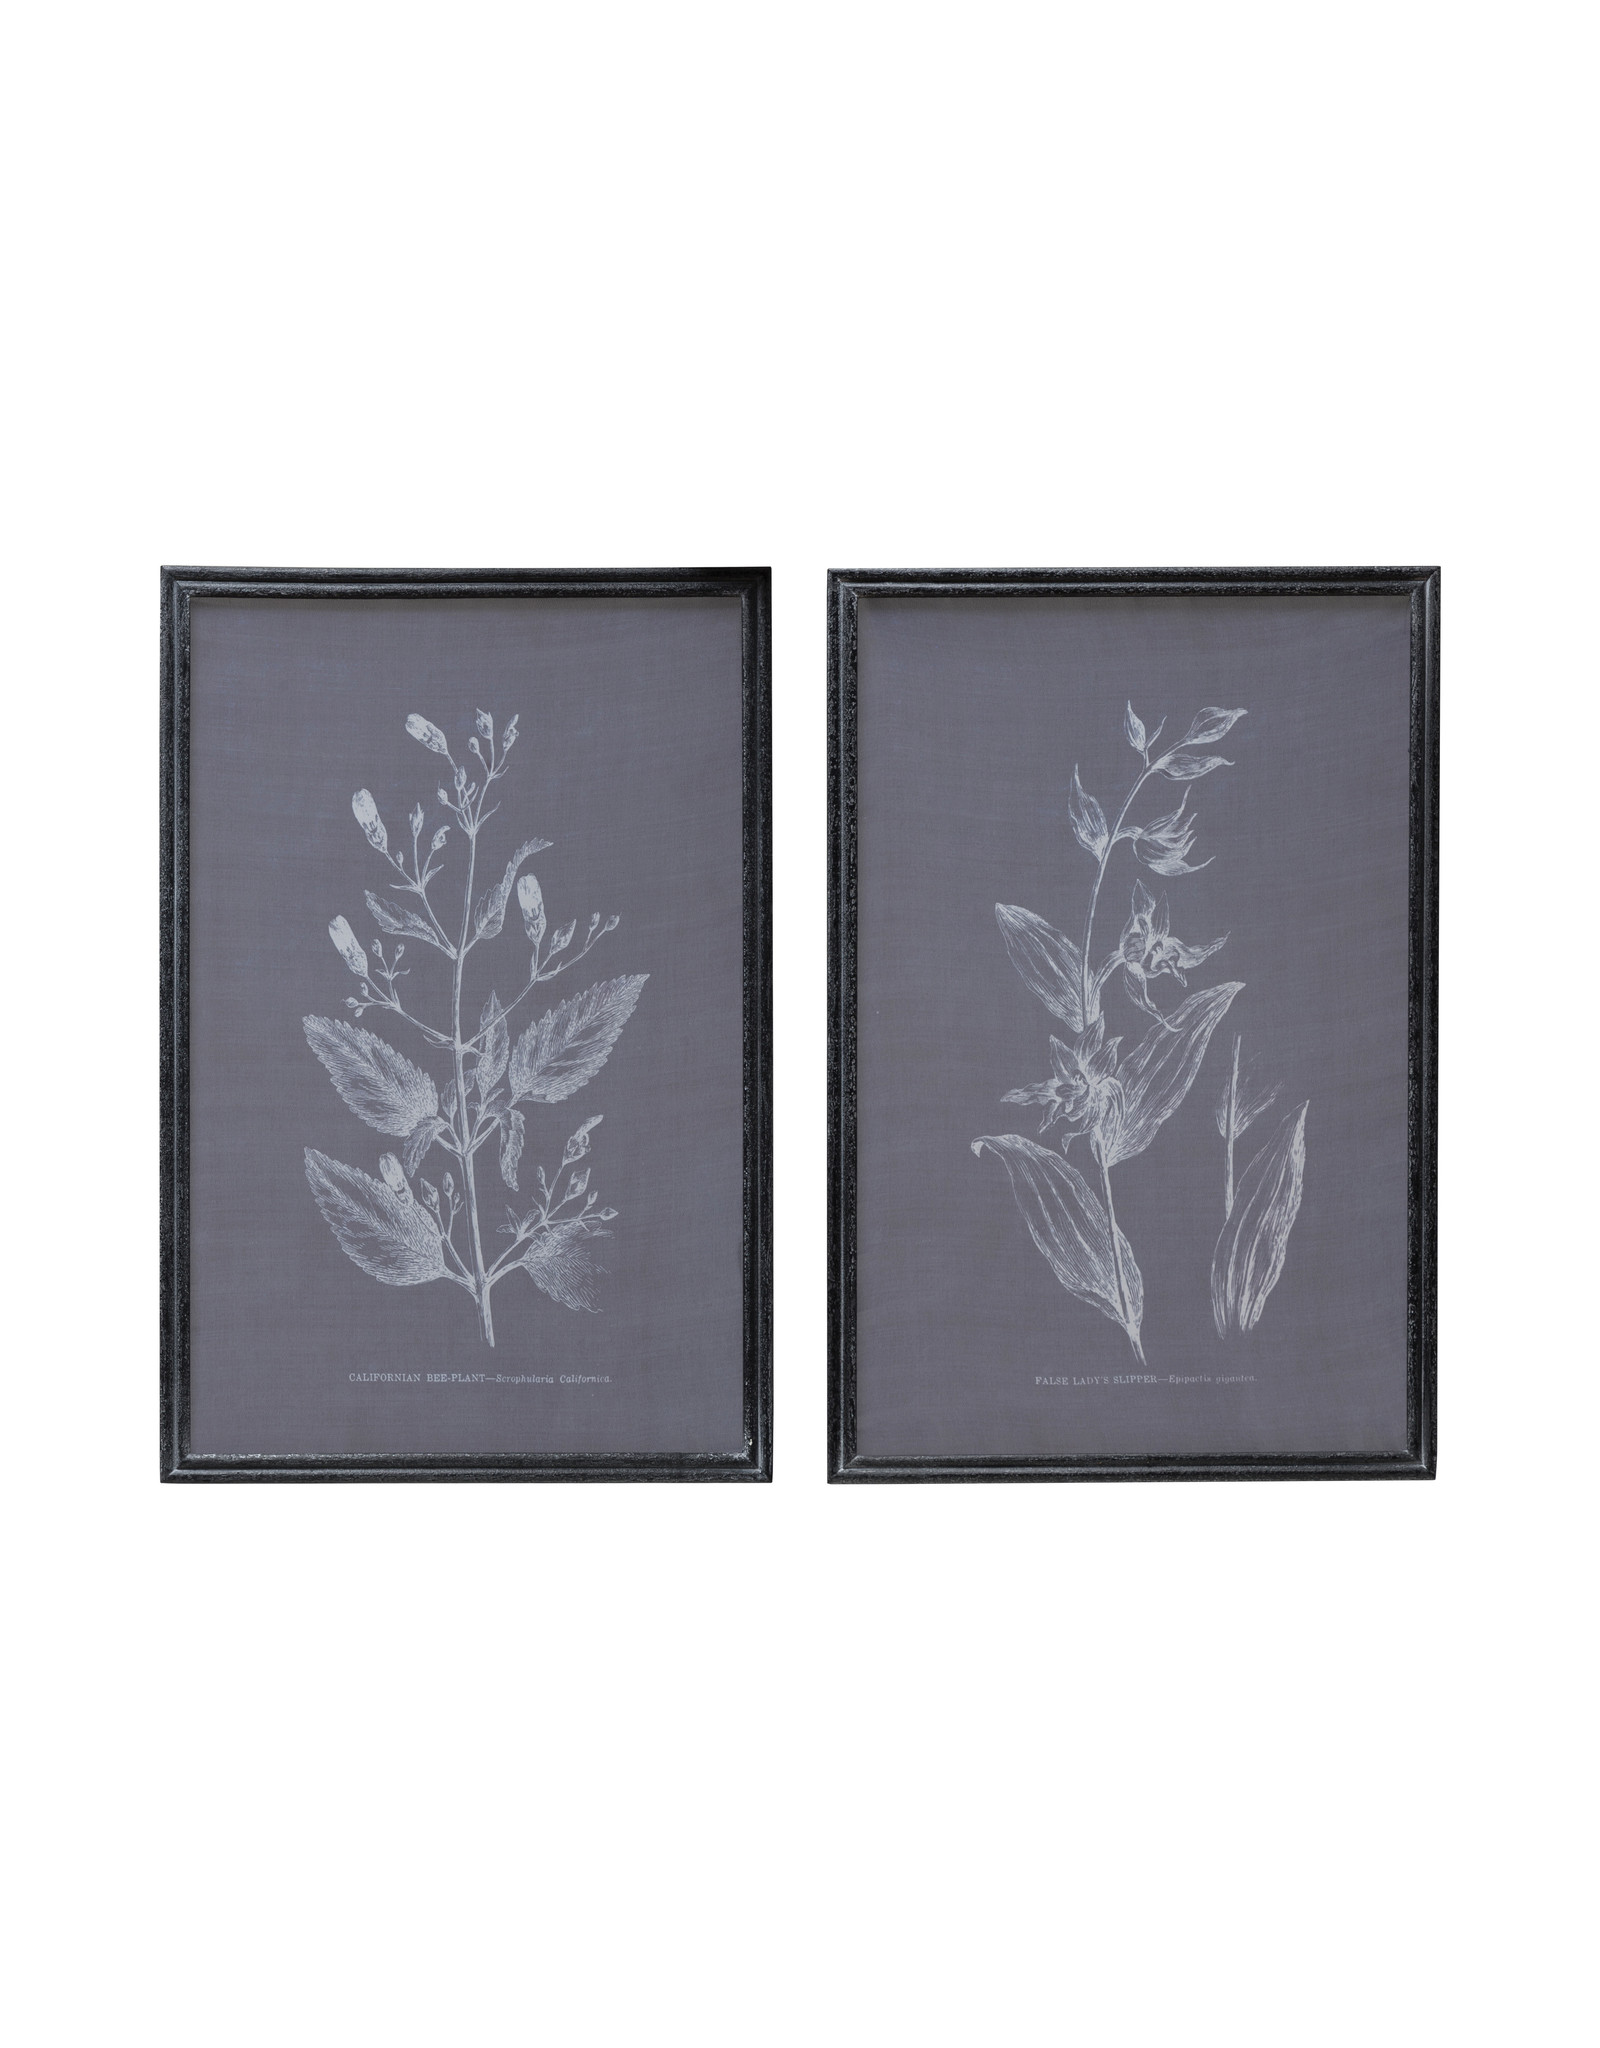 Botanical on Transparent Silk Screen Wall Décor with Wood Frame (Set of 2 Styles)